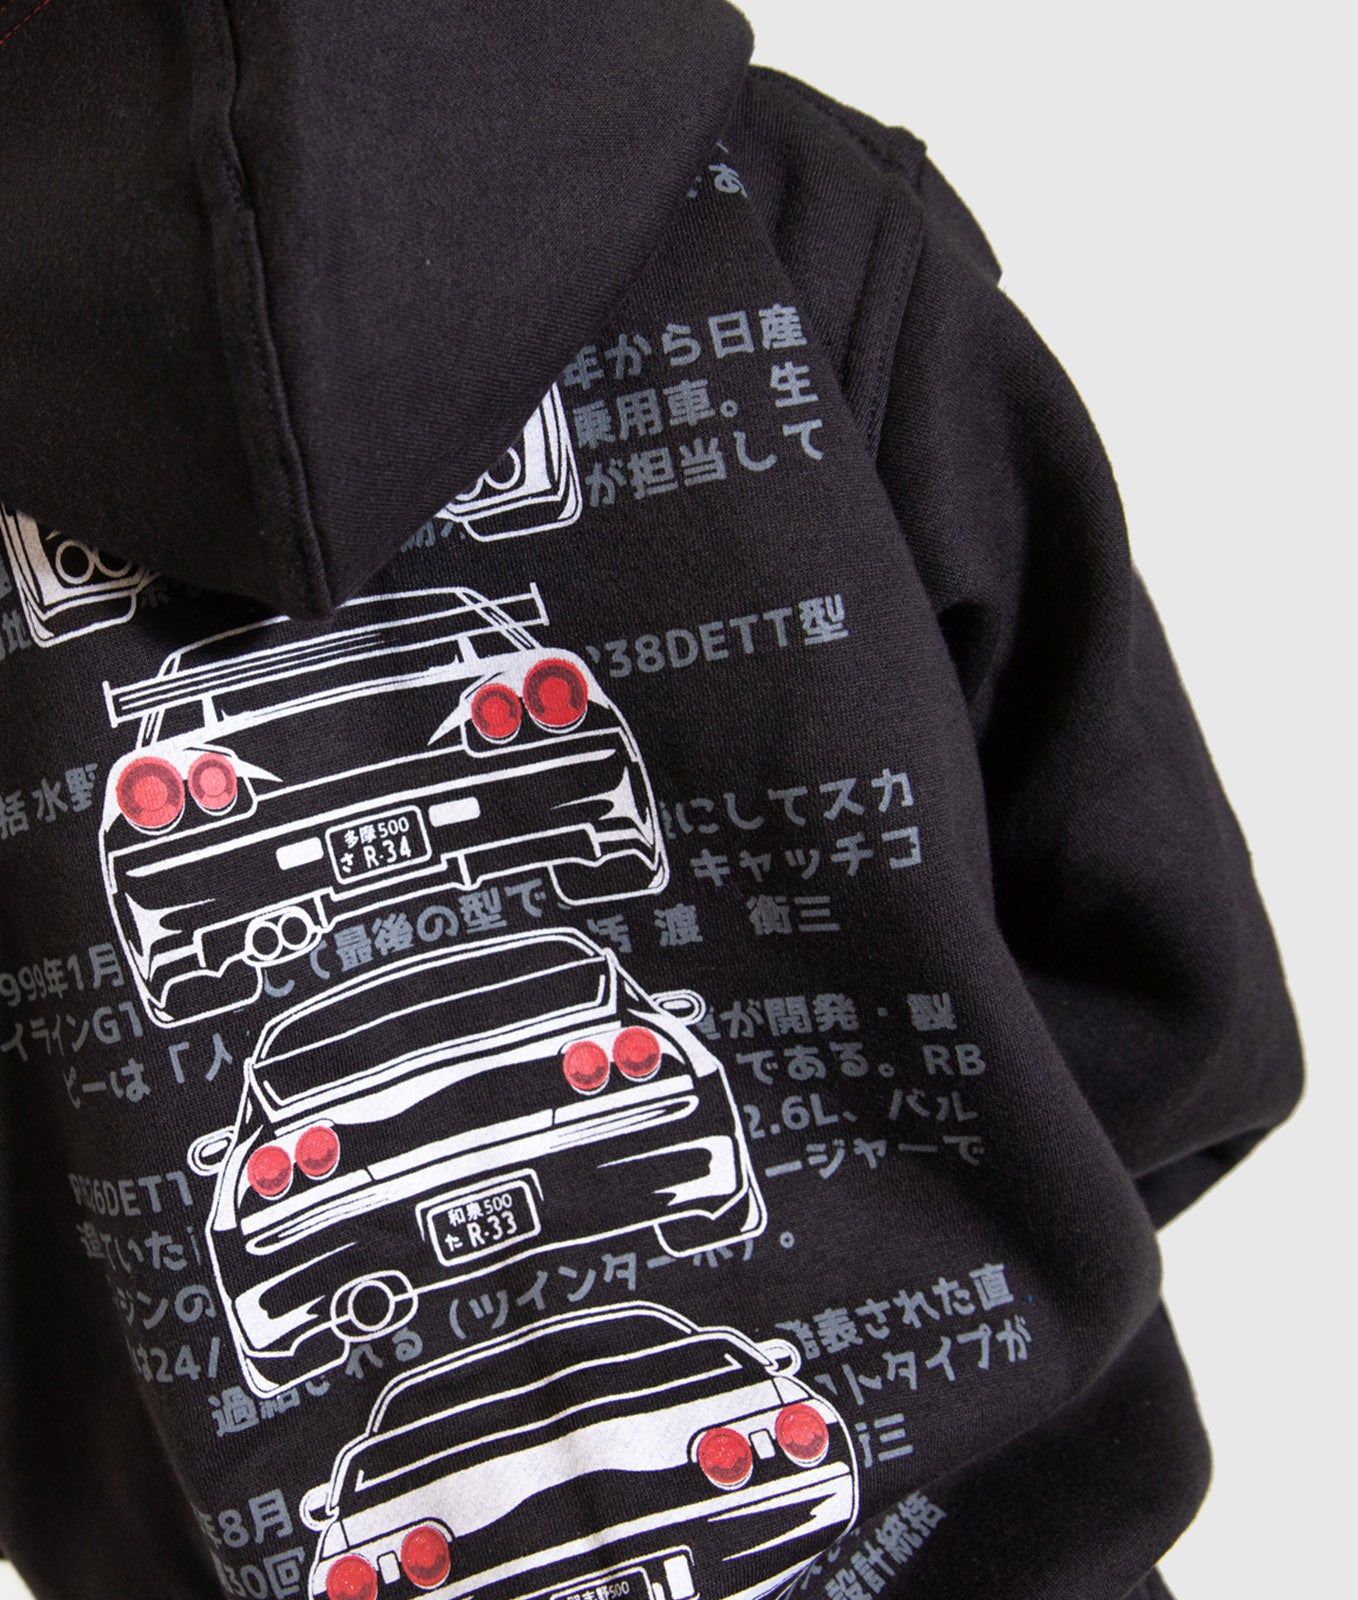 HARDTUNED HEAVY DUTY JAPANESE MADE YKK ZIPPERS NISSAN SKYLINE GTR HOODIE